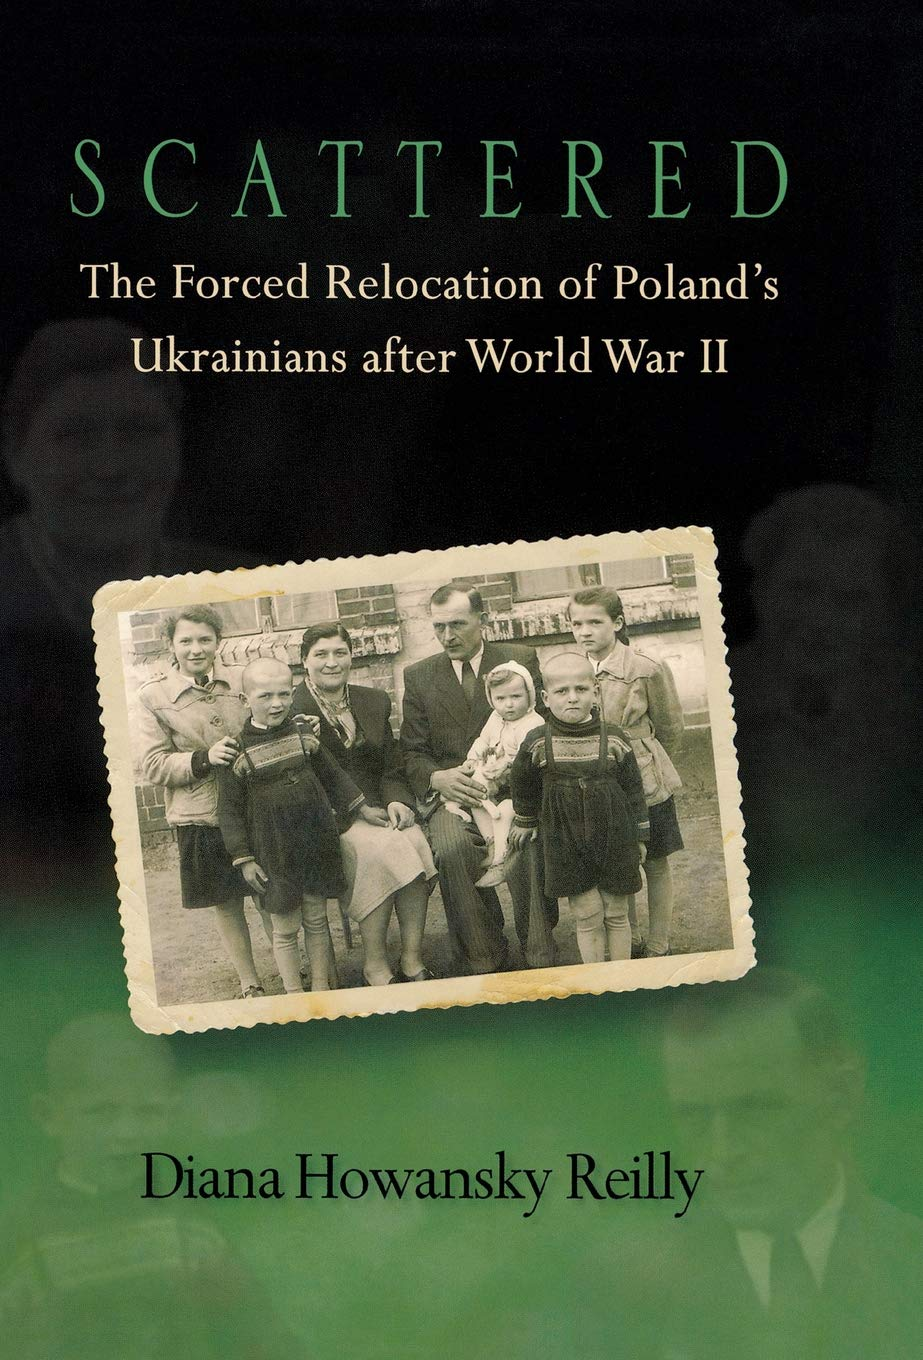 Scattered: The Forced Relocation of Poland's Ukrainians after World War II pdf